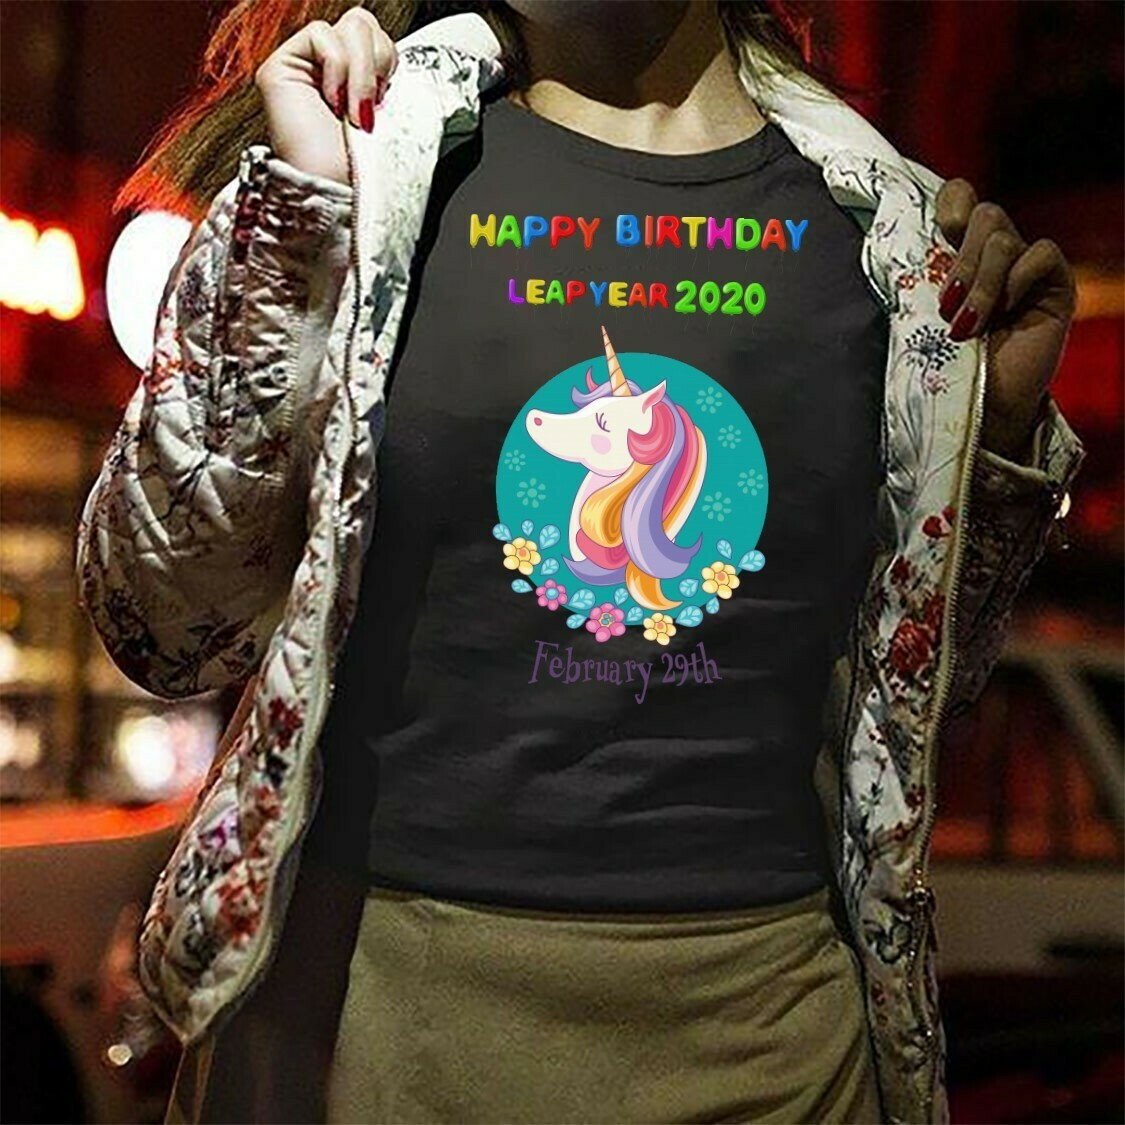 Leap Day Funny Happy Birthday Unicorn February 29th,Unicorn Multicolor fluffy unicorns dancing on rainbows  T-Shirt Hoodie Sweatshirt Sweater Tee Kids Youth Gifts Jolly Family Gifts